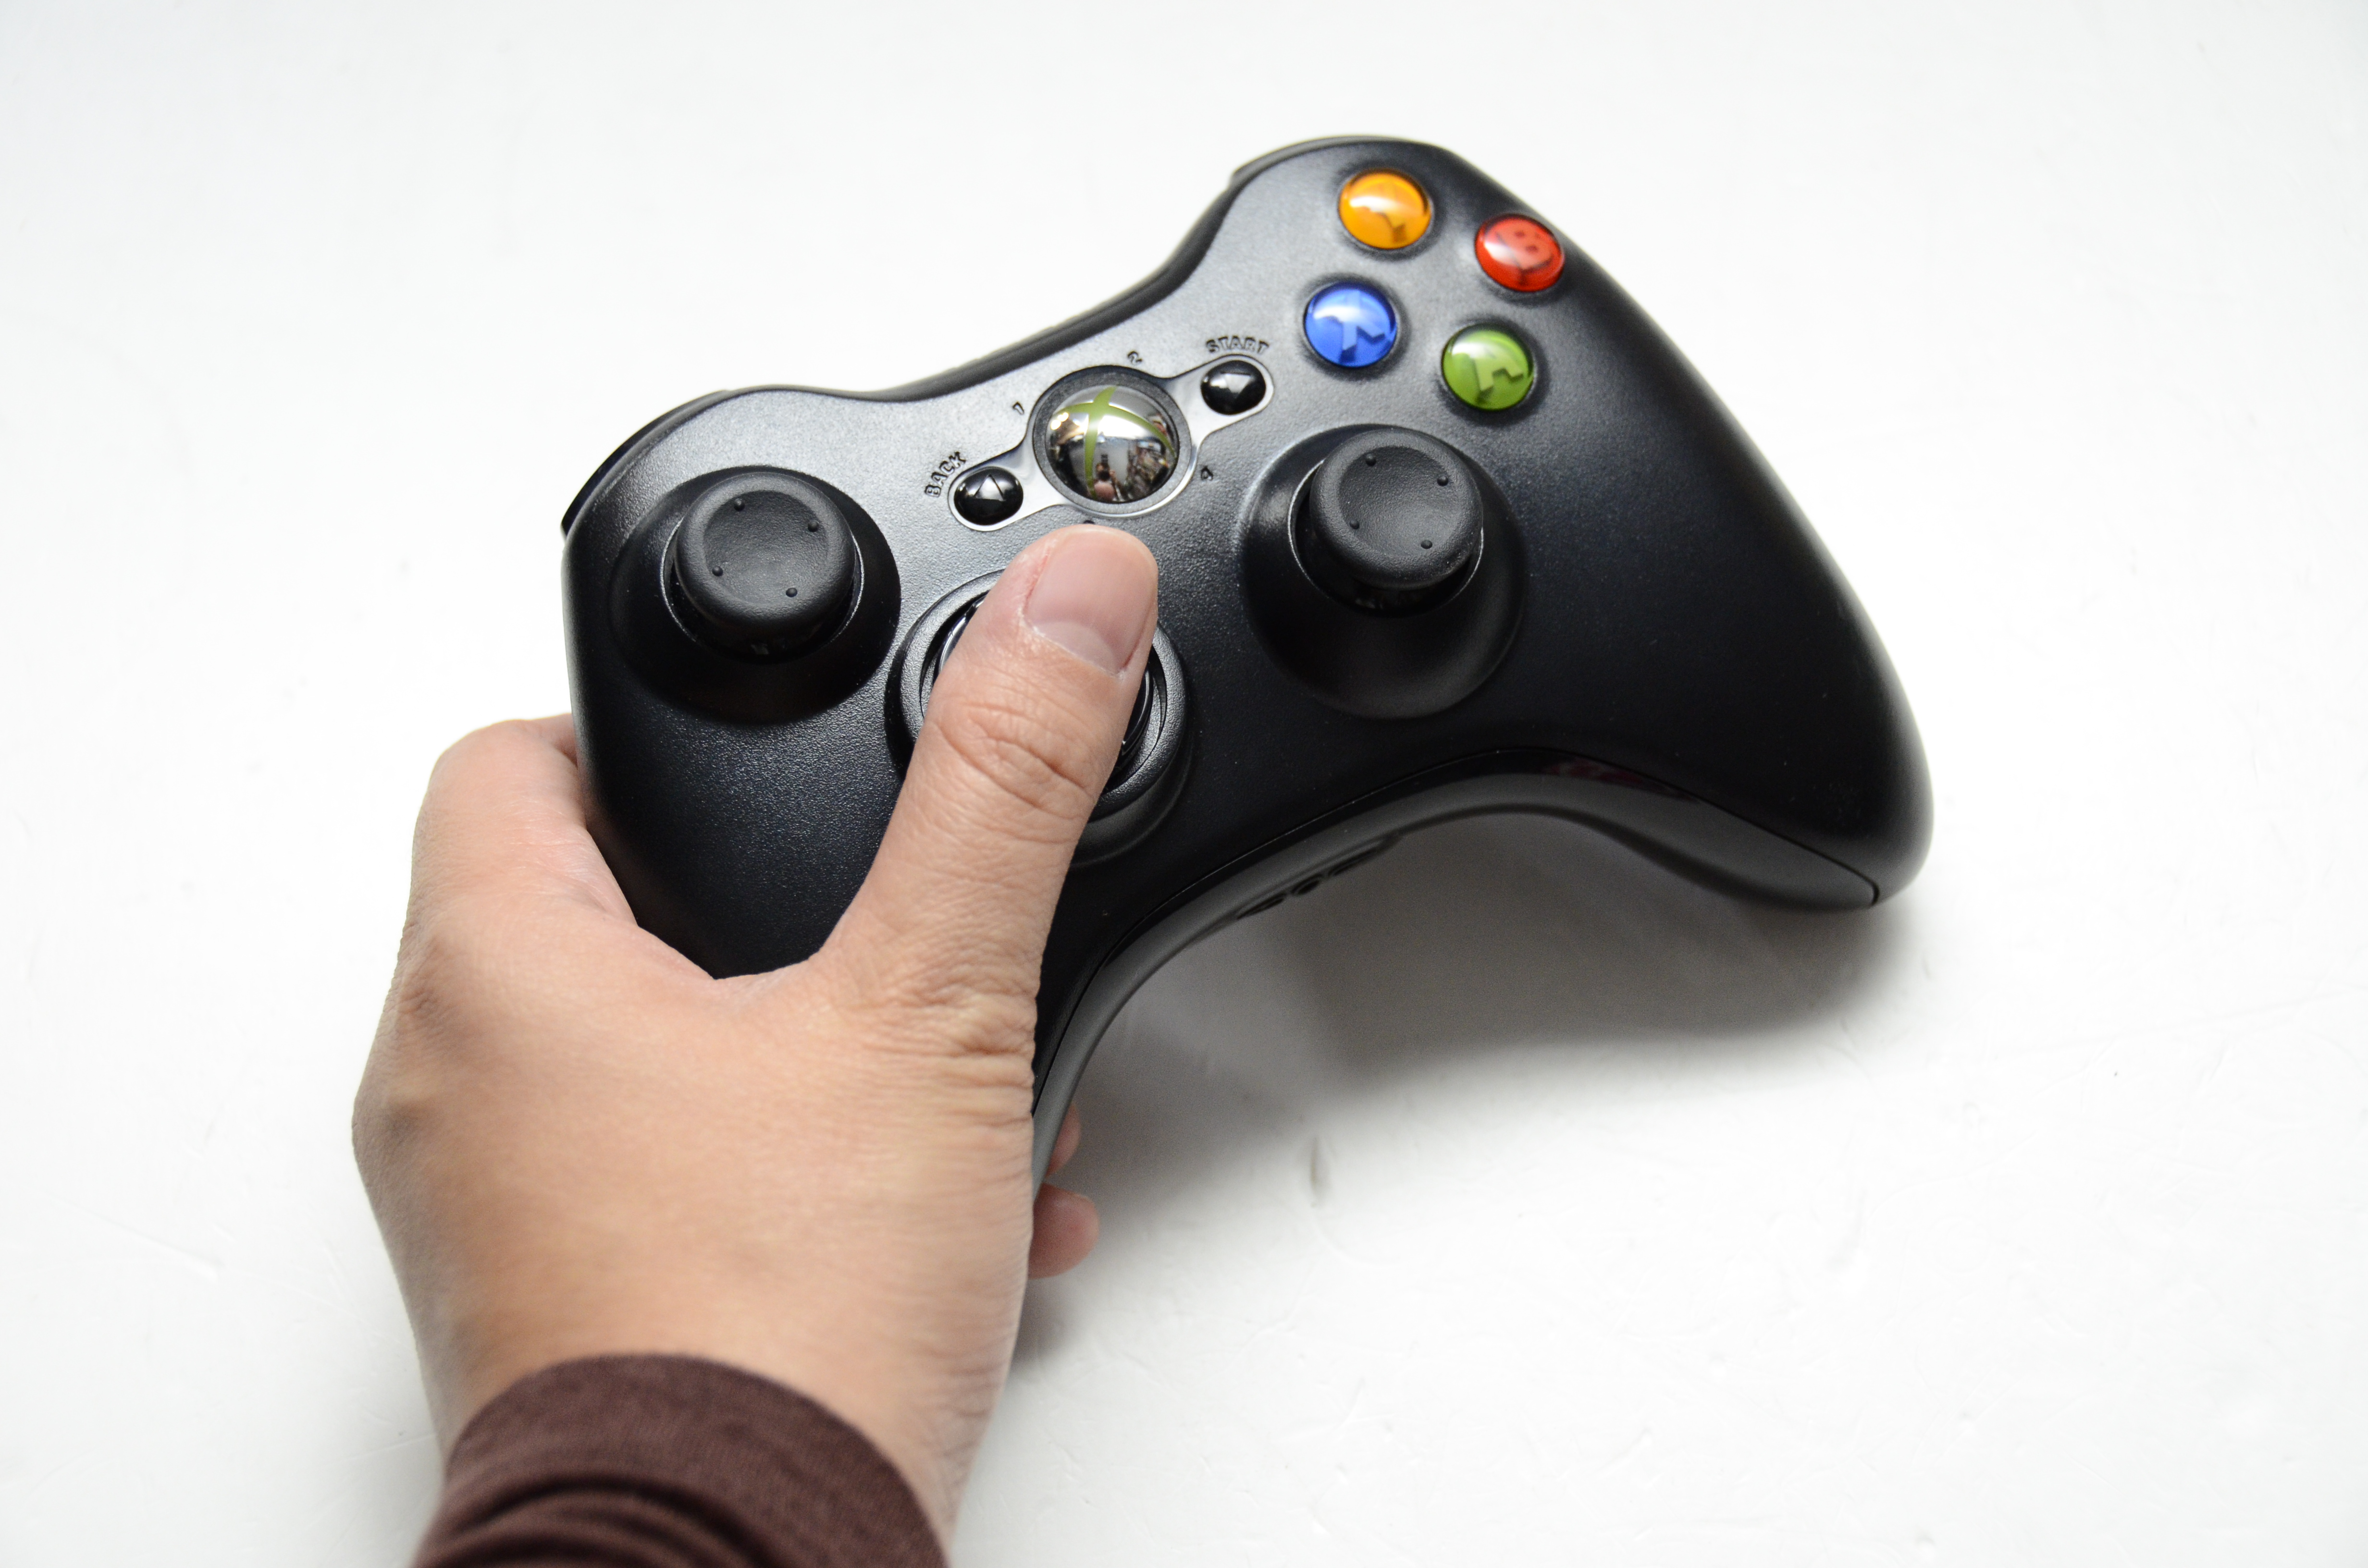 How To Change The Batteries Of An Xbox Controller 6 Steps